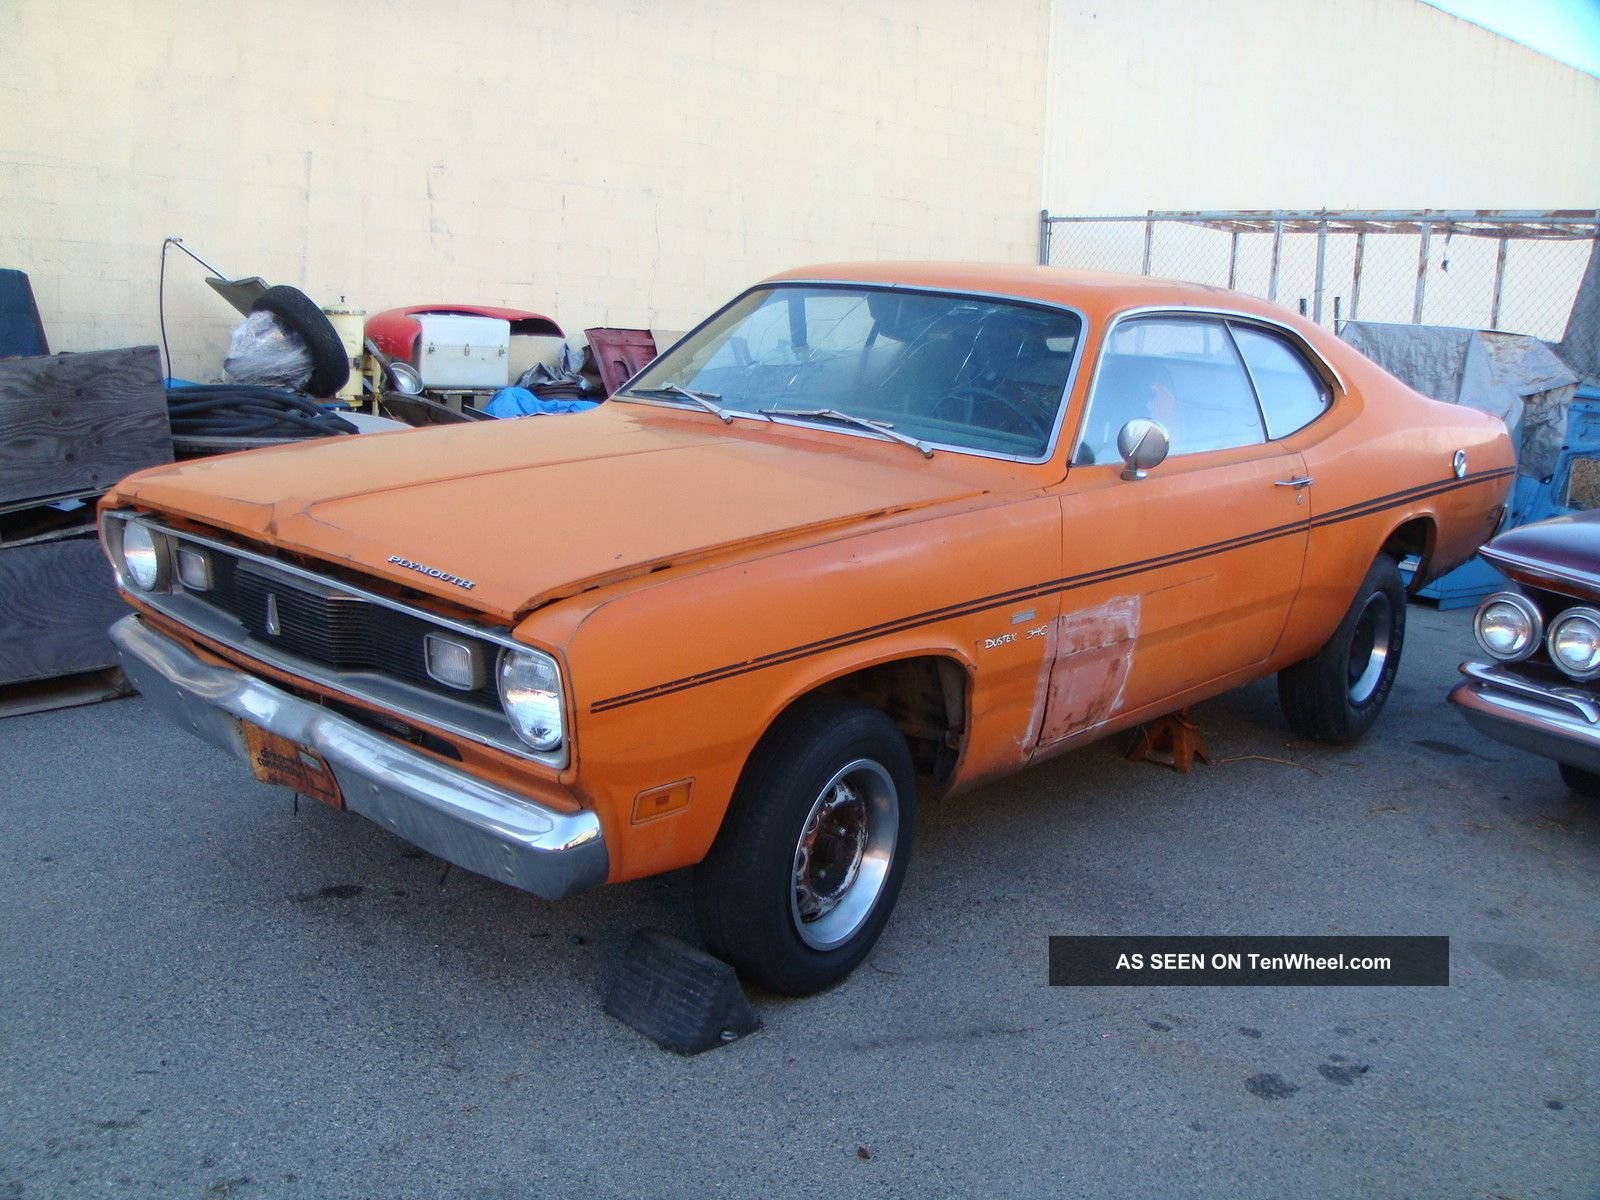 1970 Plymouth Duster H Code 340 Duster photo